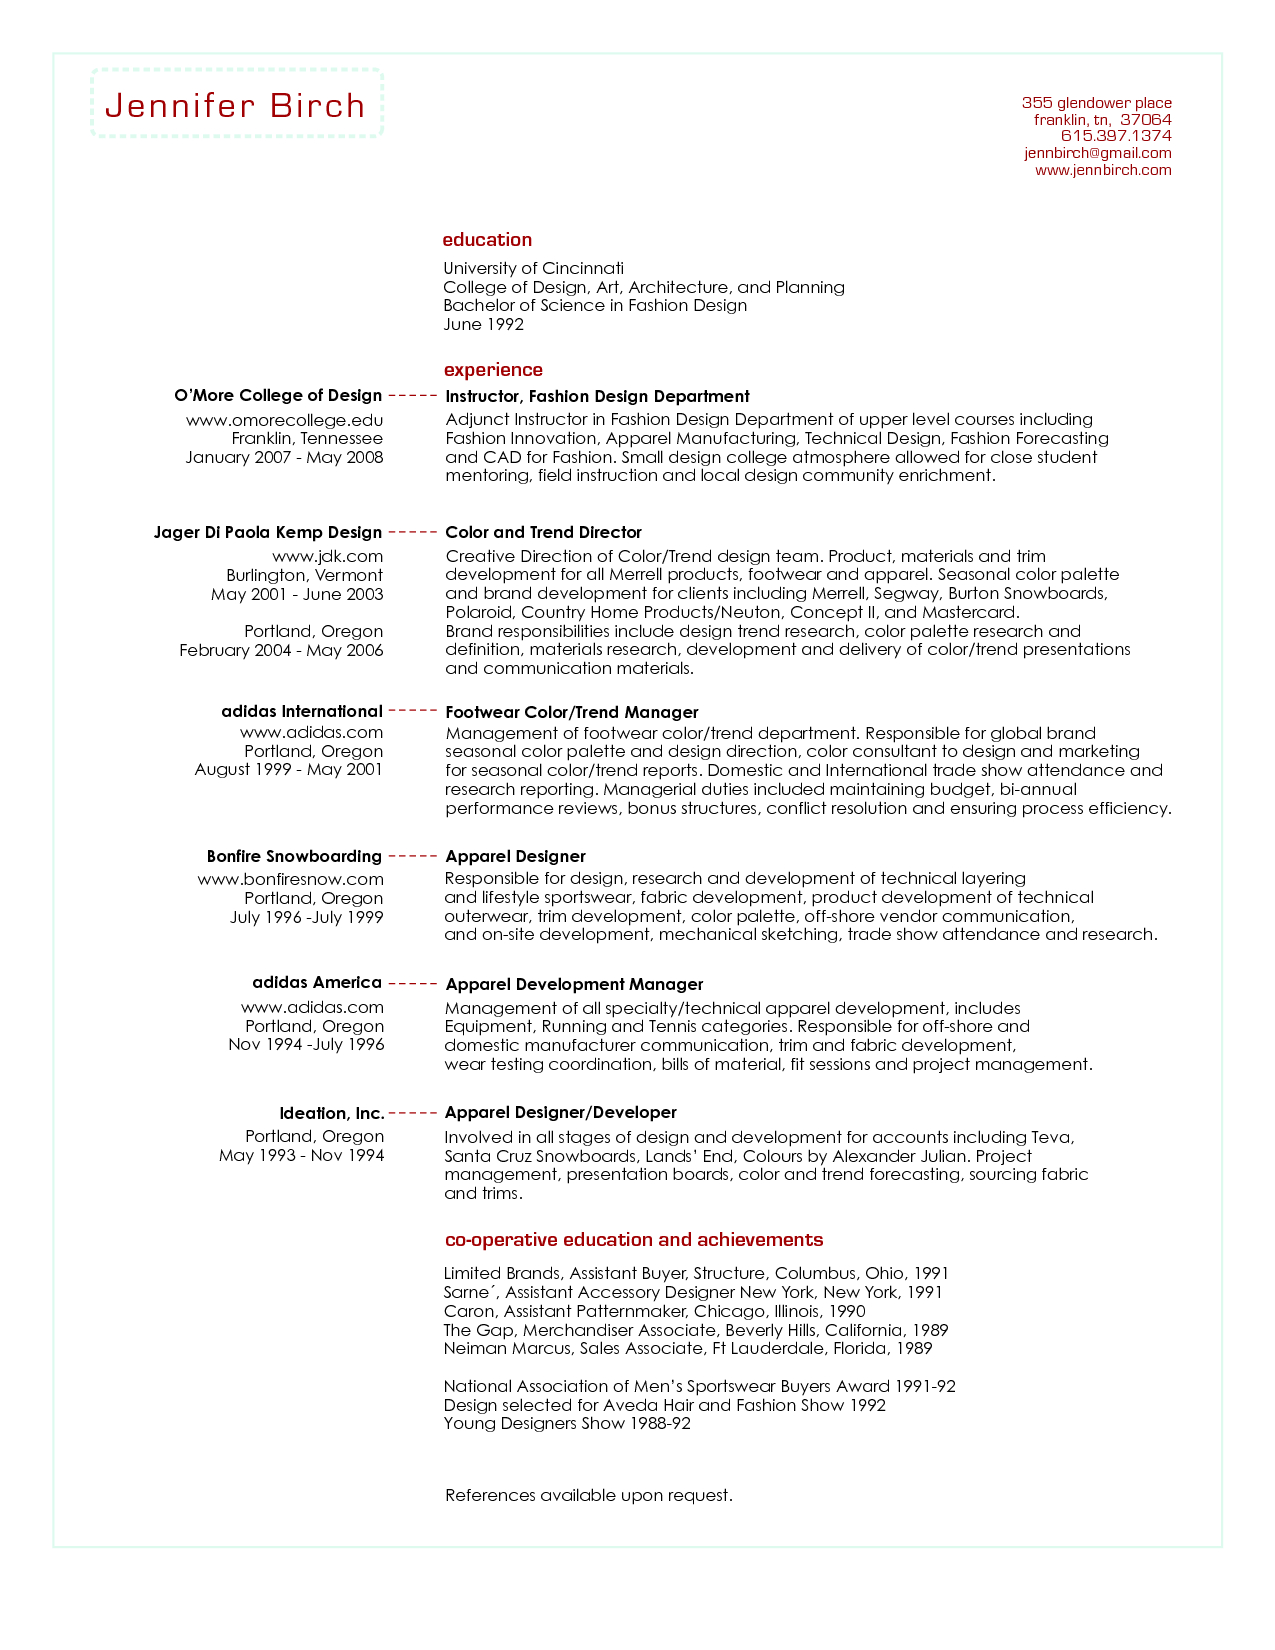 Manufacturing Skills for Resume - Junior Fashion Er Resume Skills Google Search